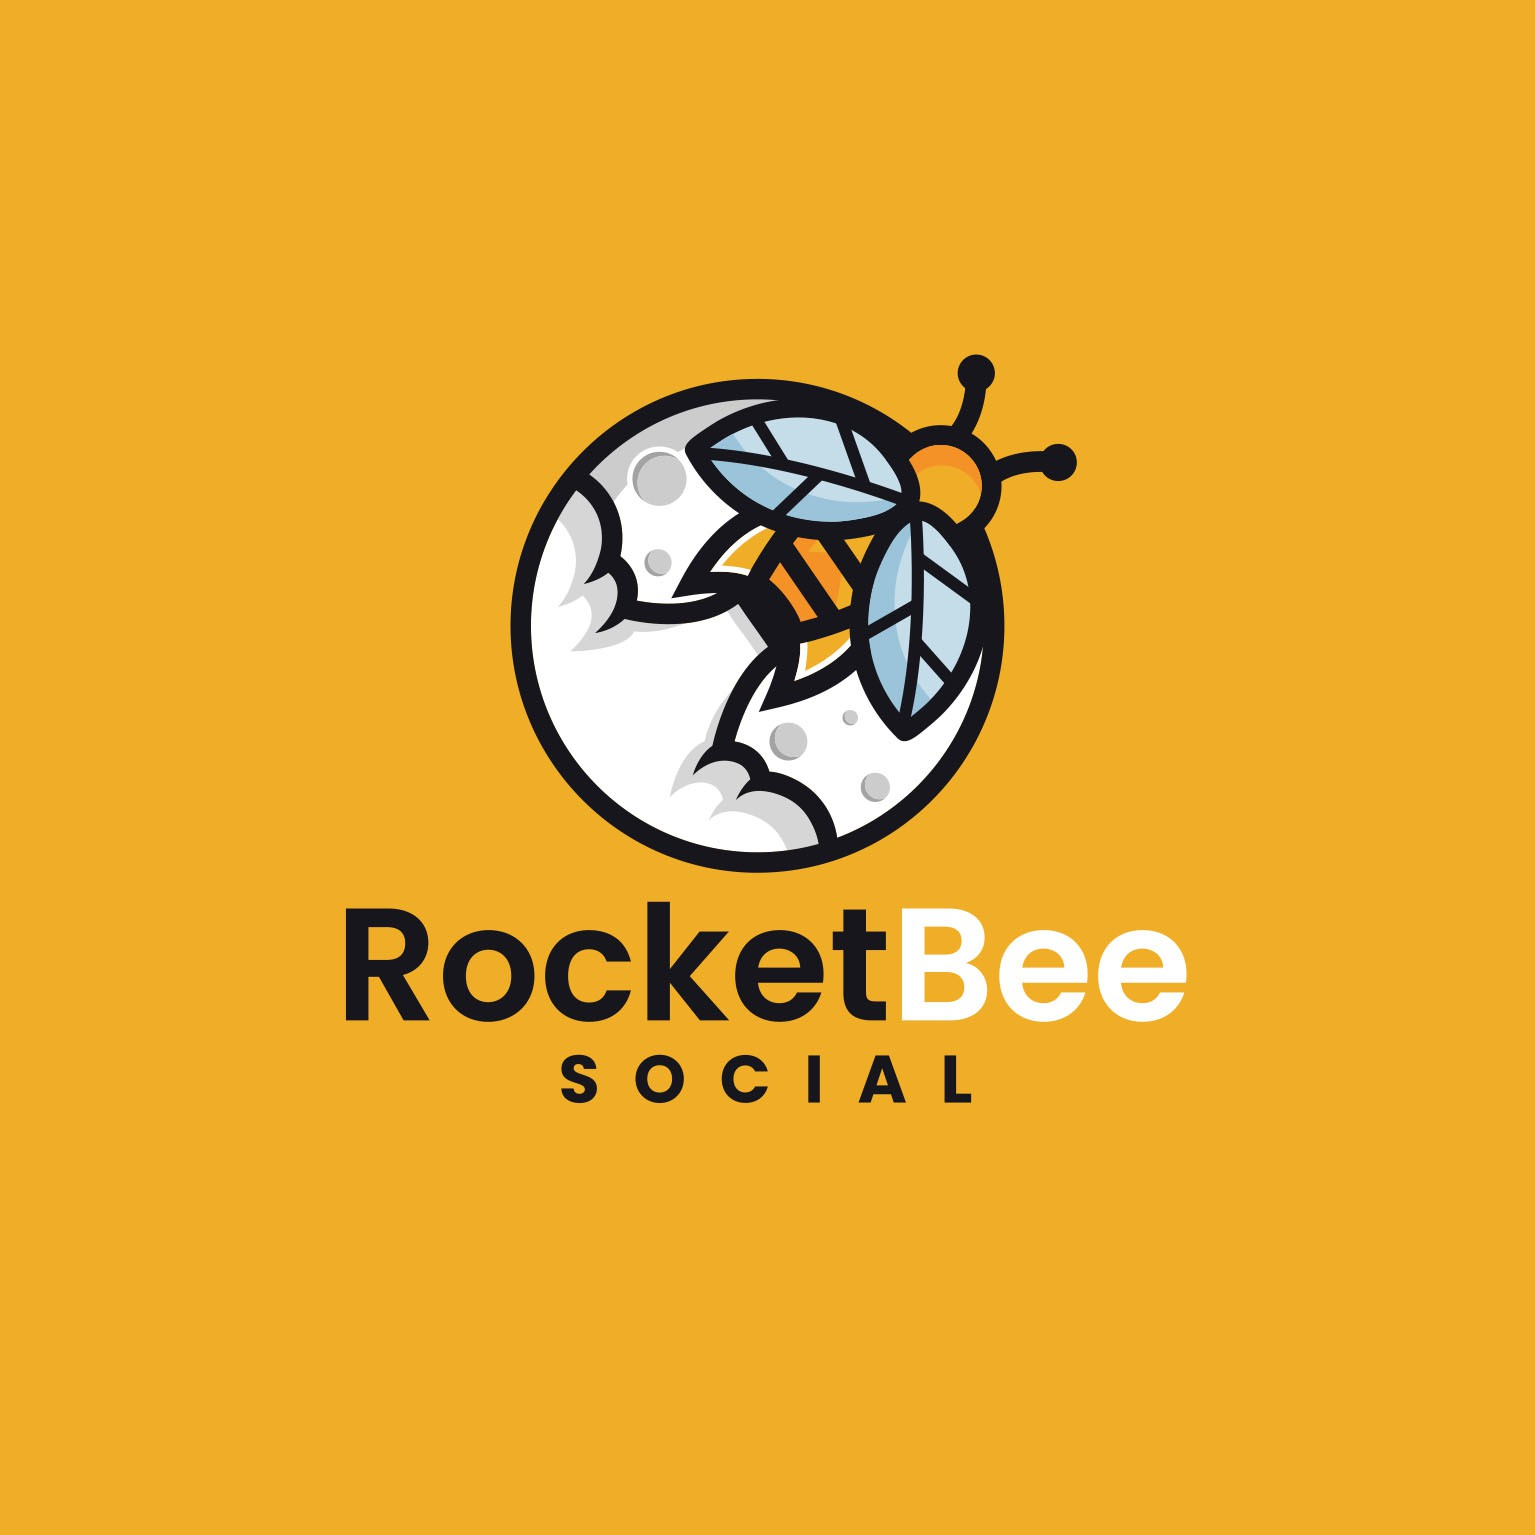 We Need An Awesome & Exciting Logo For Our Digital Marketing Company!